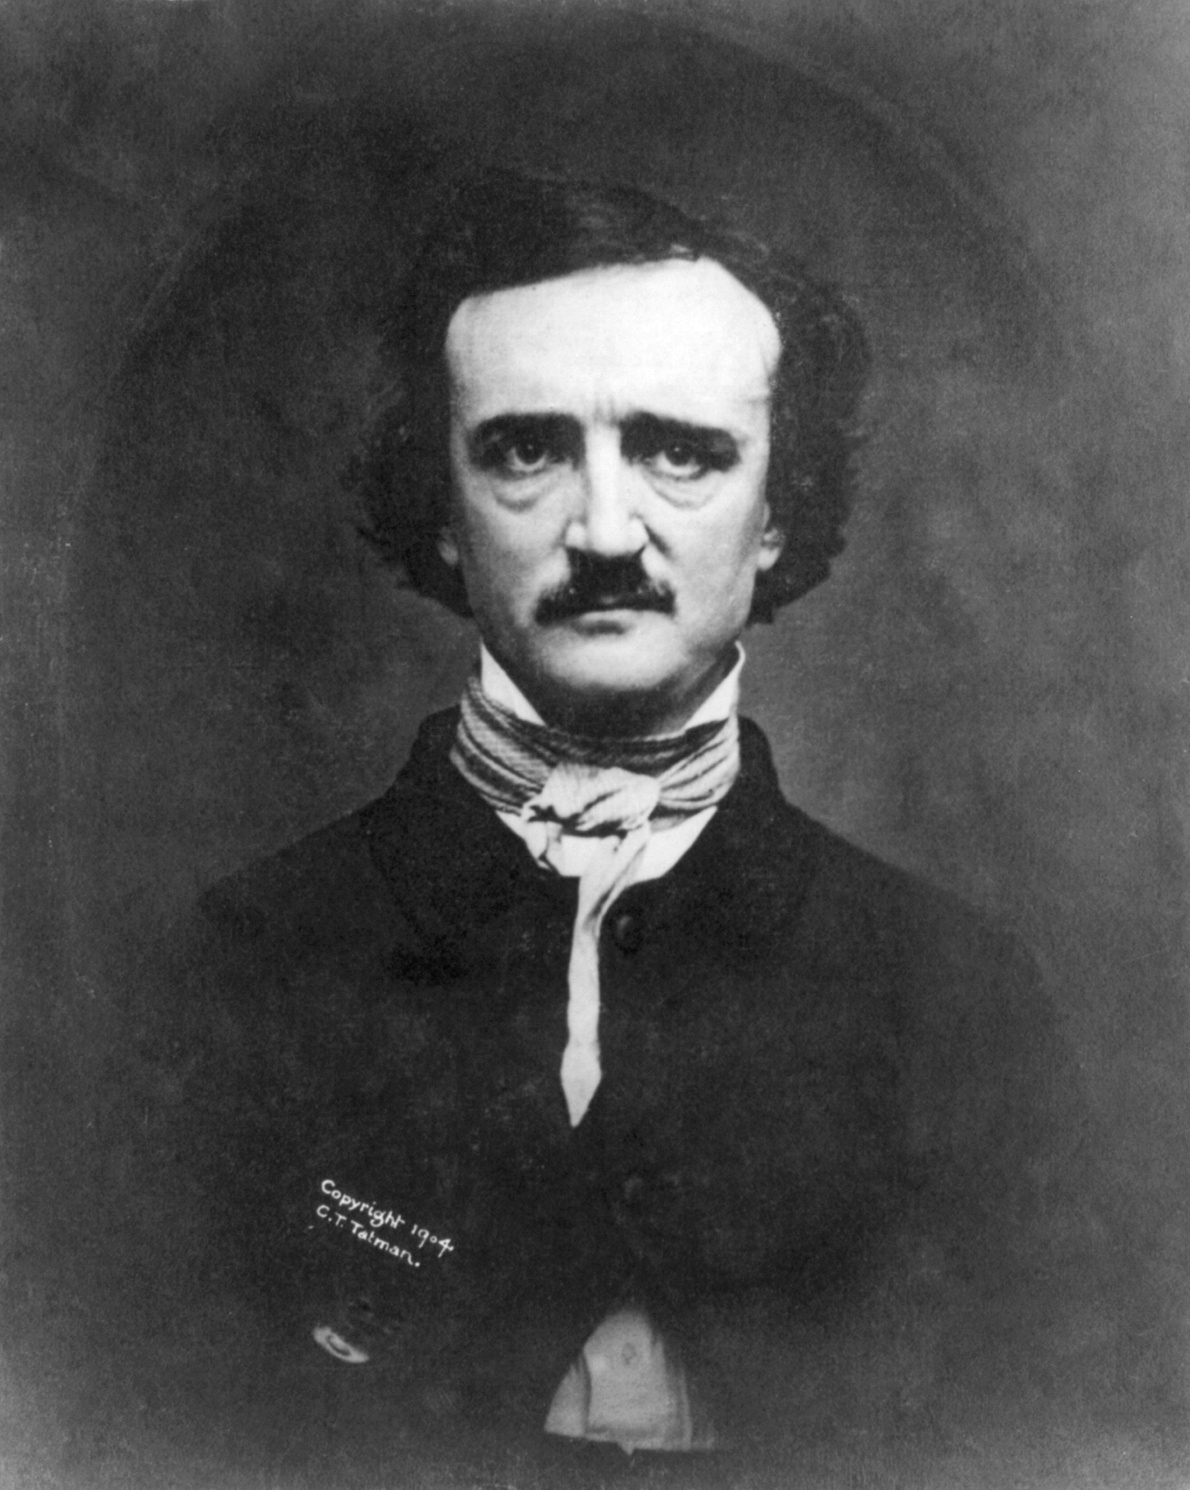 Photograph of Edgar Allan Poe taken less than a year before his death (via    Wikimedia Commons   )